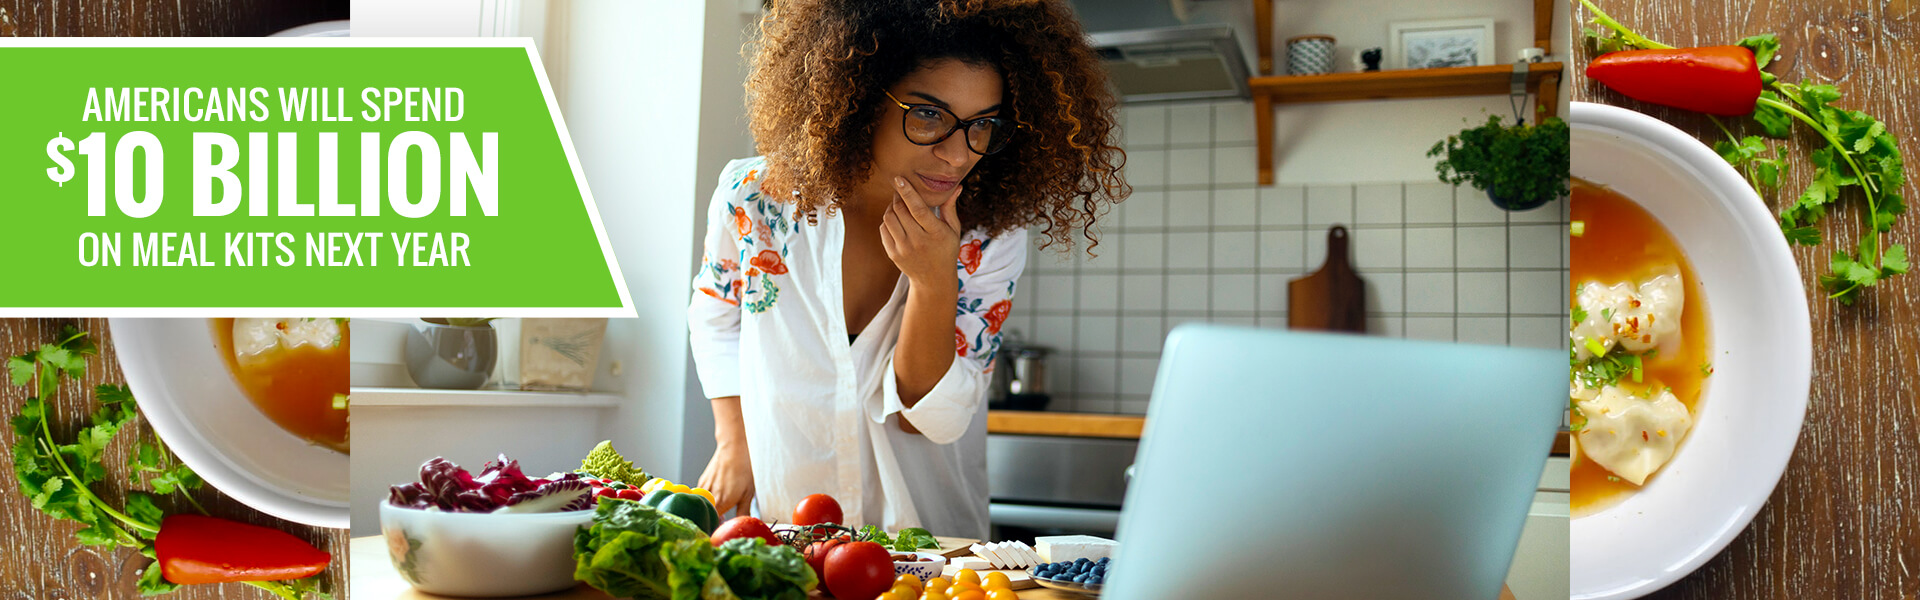 Food & Hospitality blog - QSR and Fast Casual Restaurants vs Meal Kits.